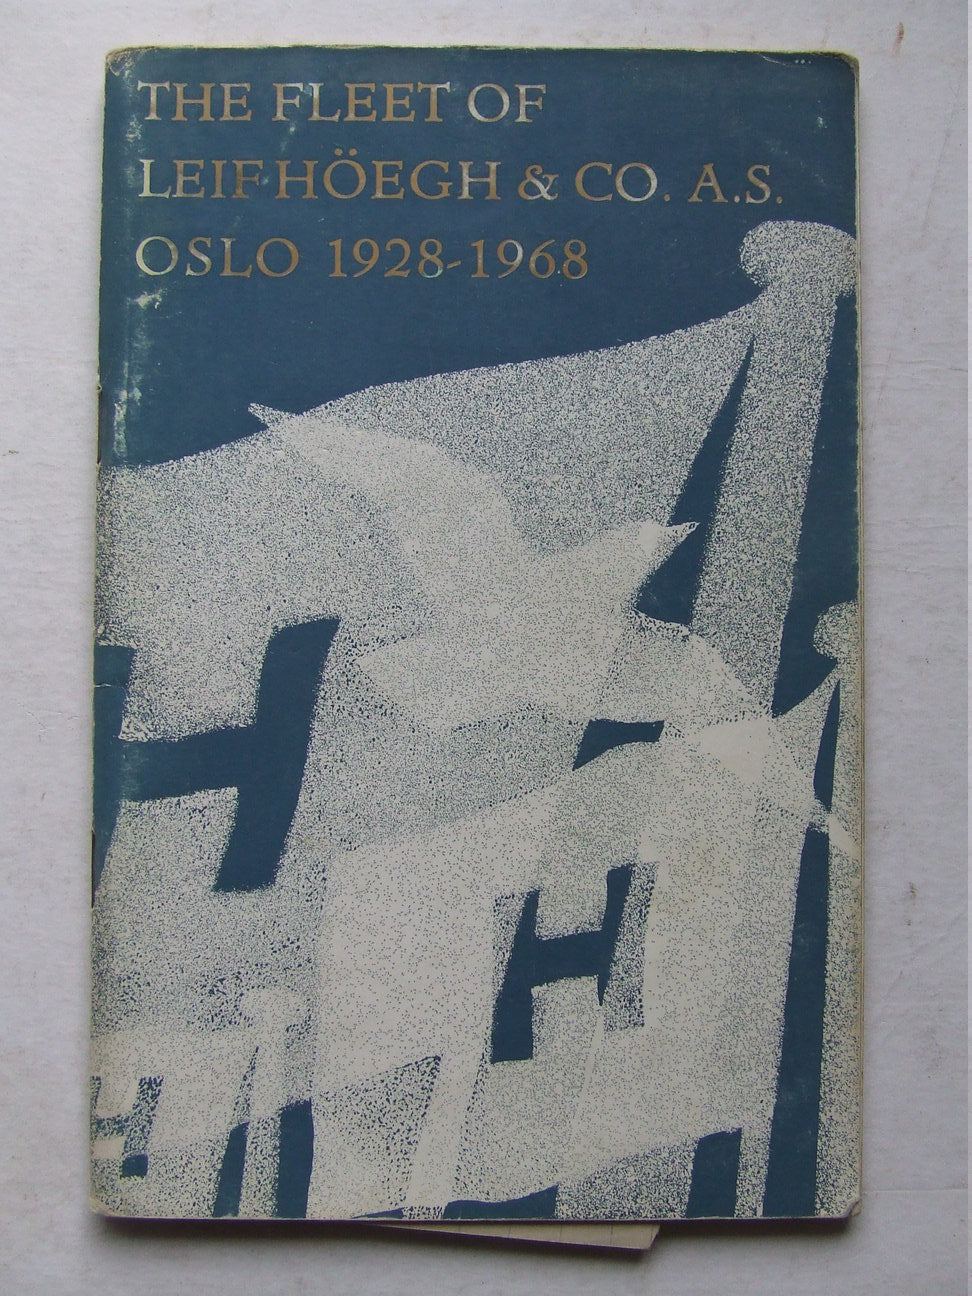 Leif Hoegh & Co., Oslo, the firm and the fleet 1928 - 1968